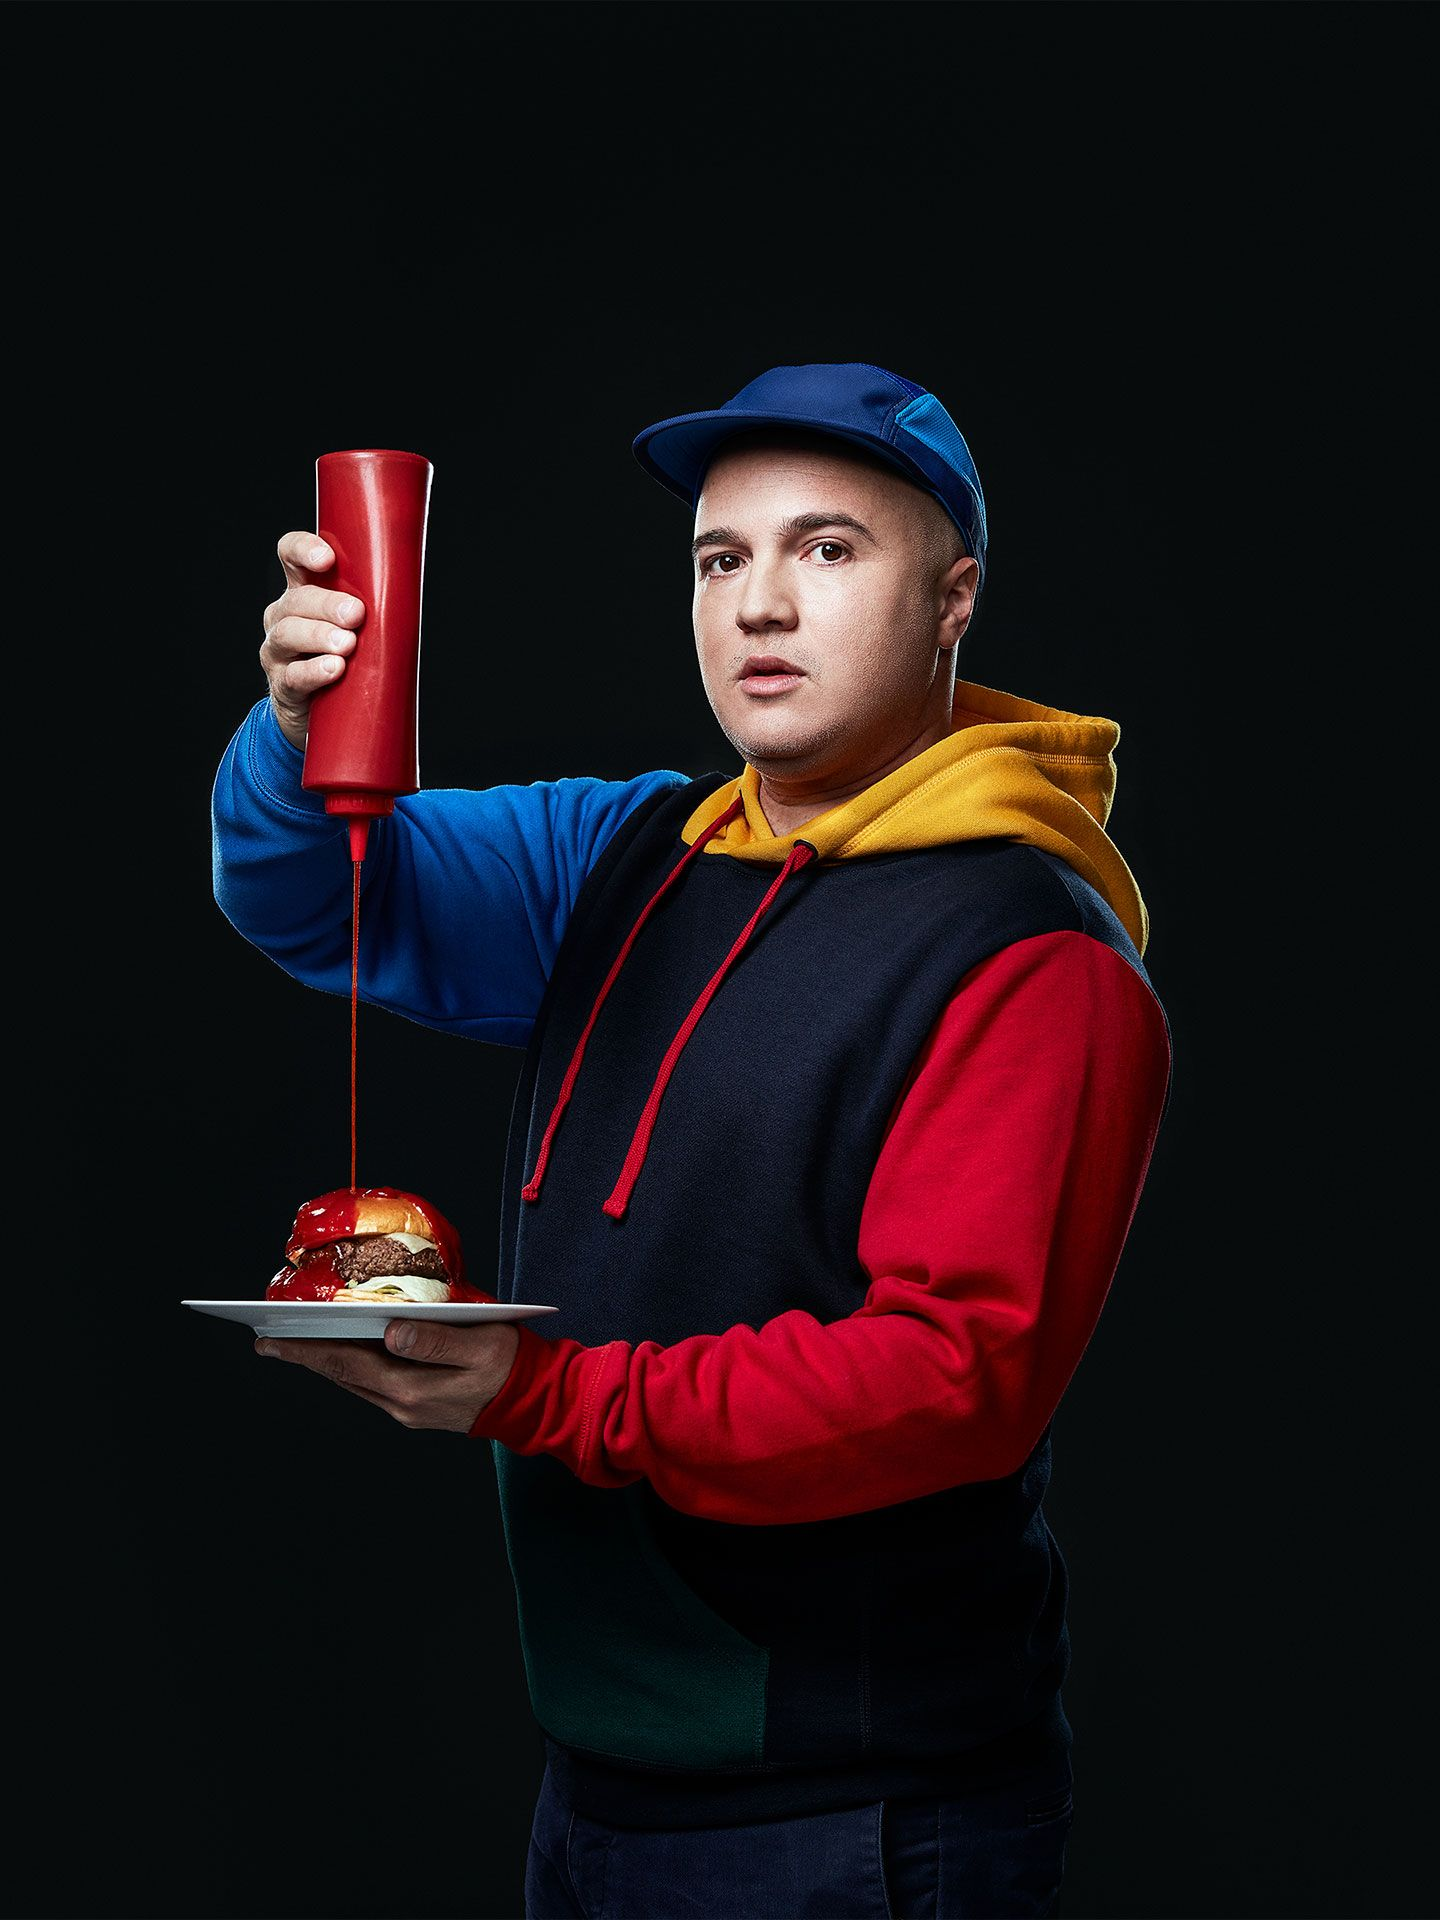 portrait of chef Younes Bengeloune dressed in colourful hoodie squeezing a bottle of ketchup on a burger looking surprised by Jocelyn Michel for the Cathcart